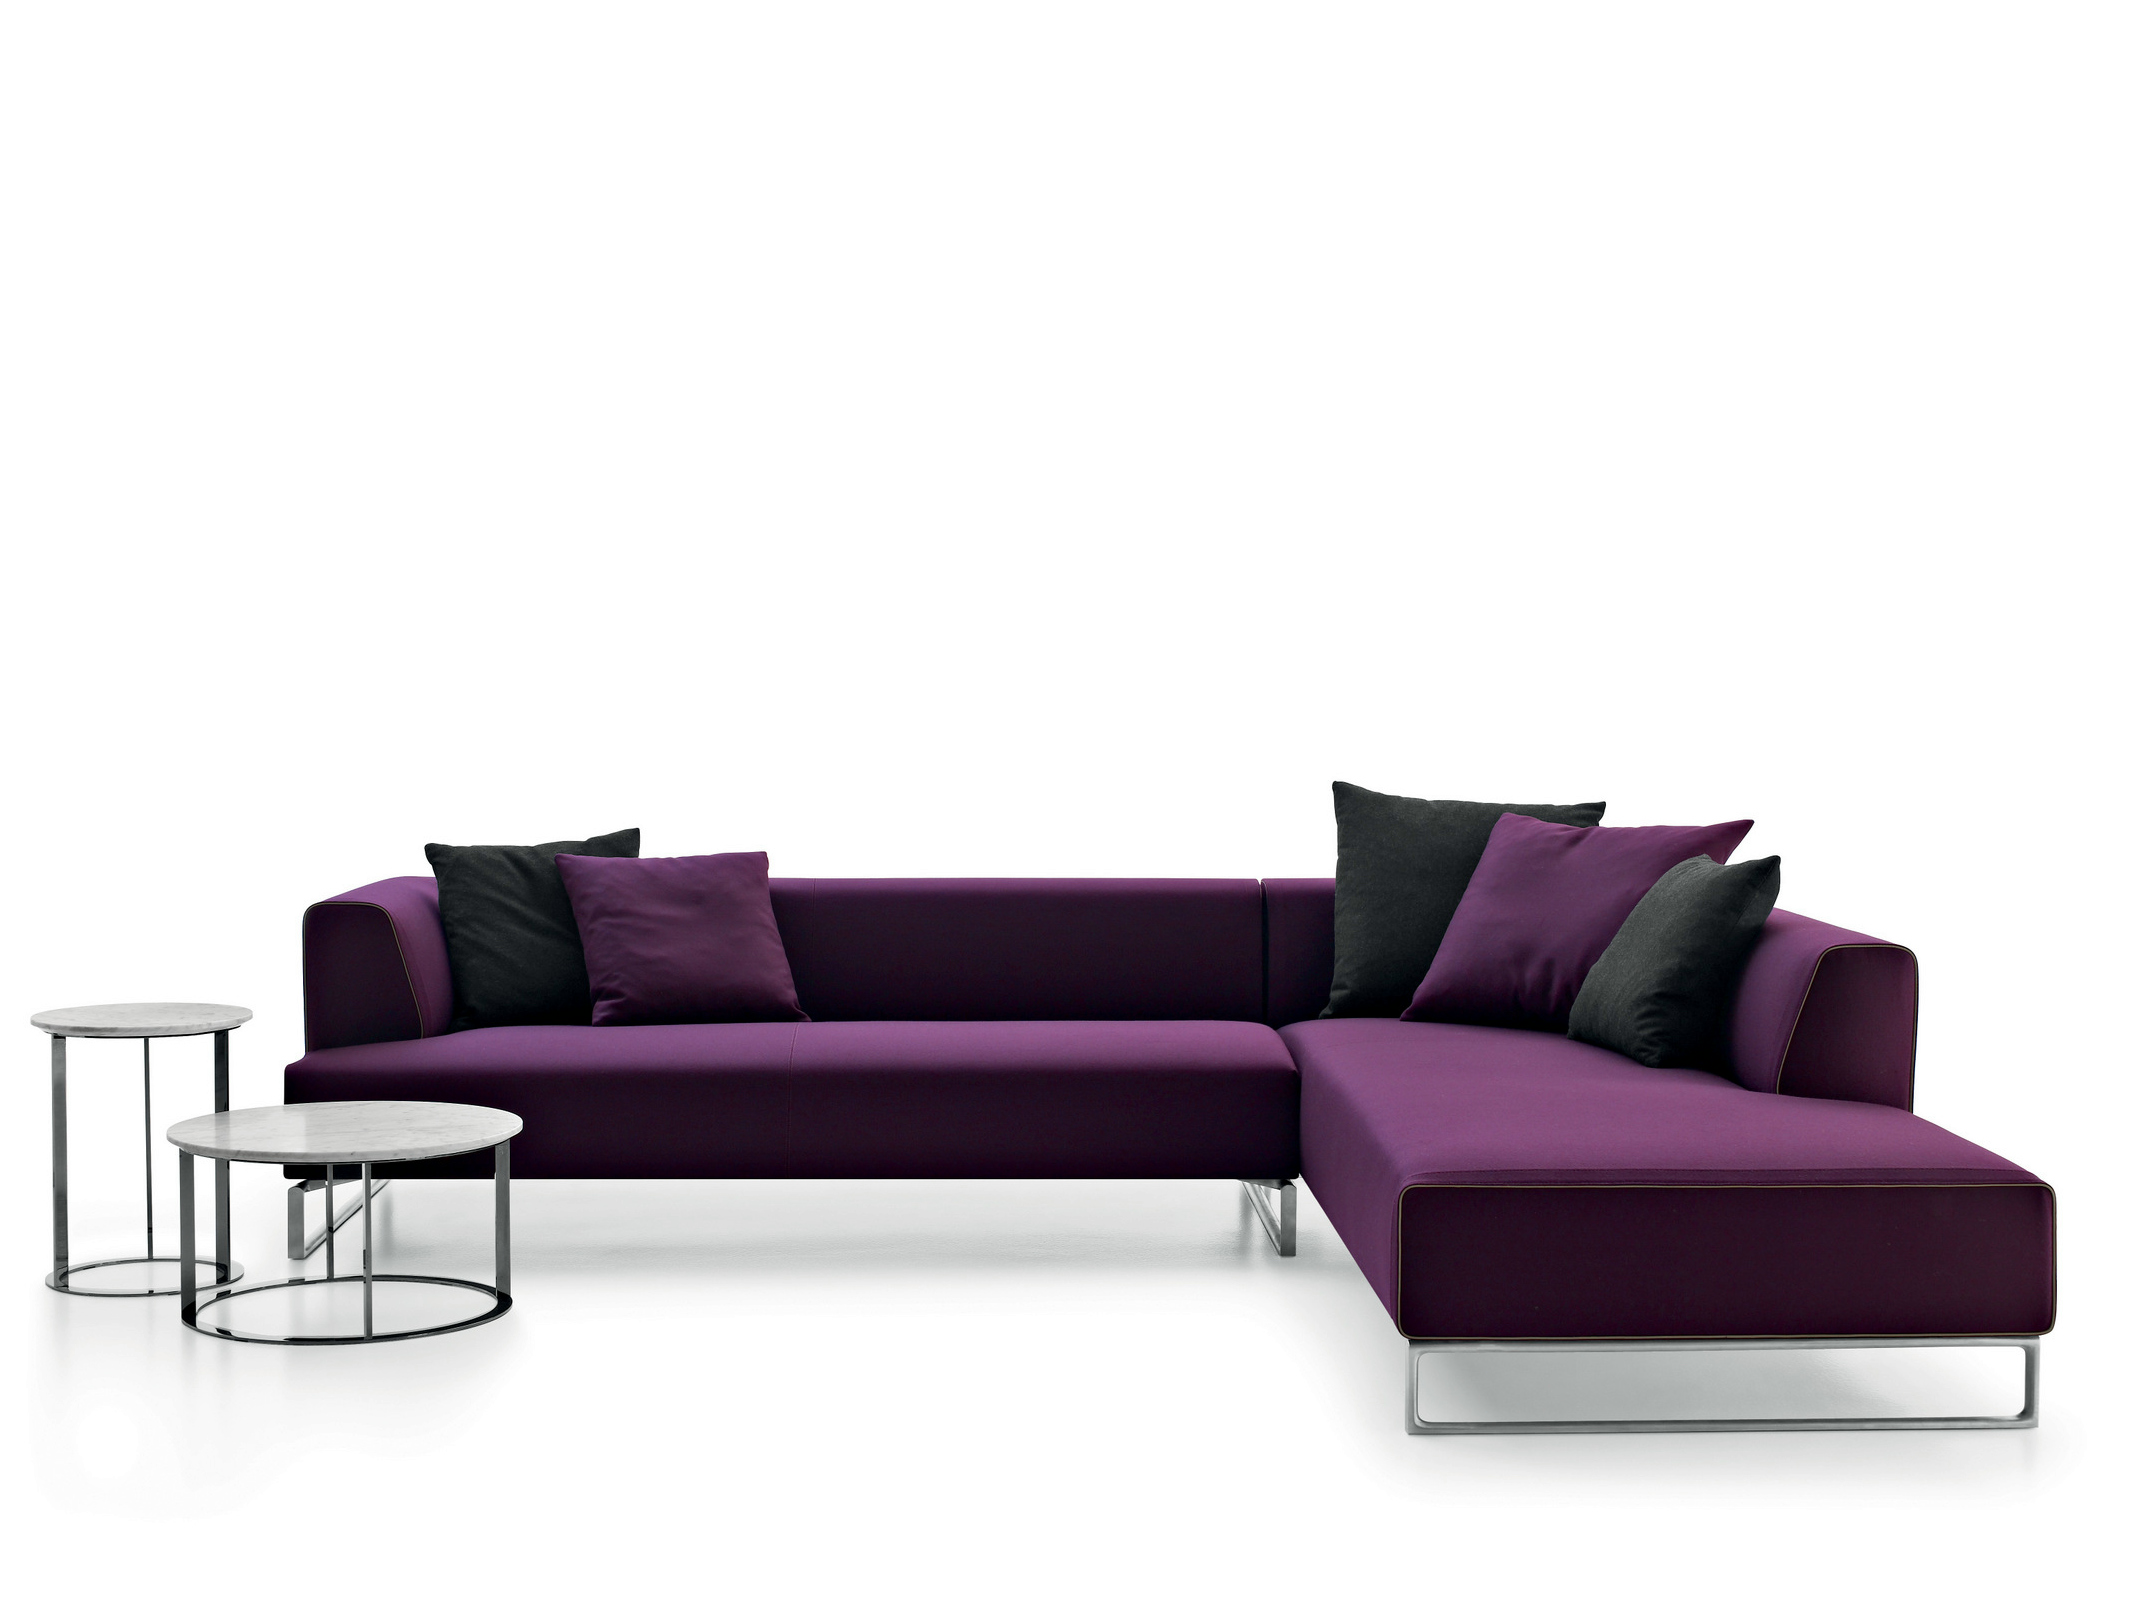 Solo 39 14 corner sofa by b b italia design antonio citterio for B en b italia